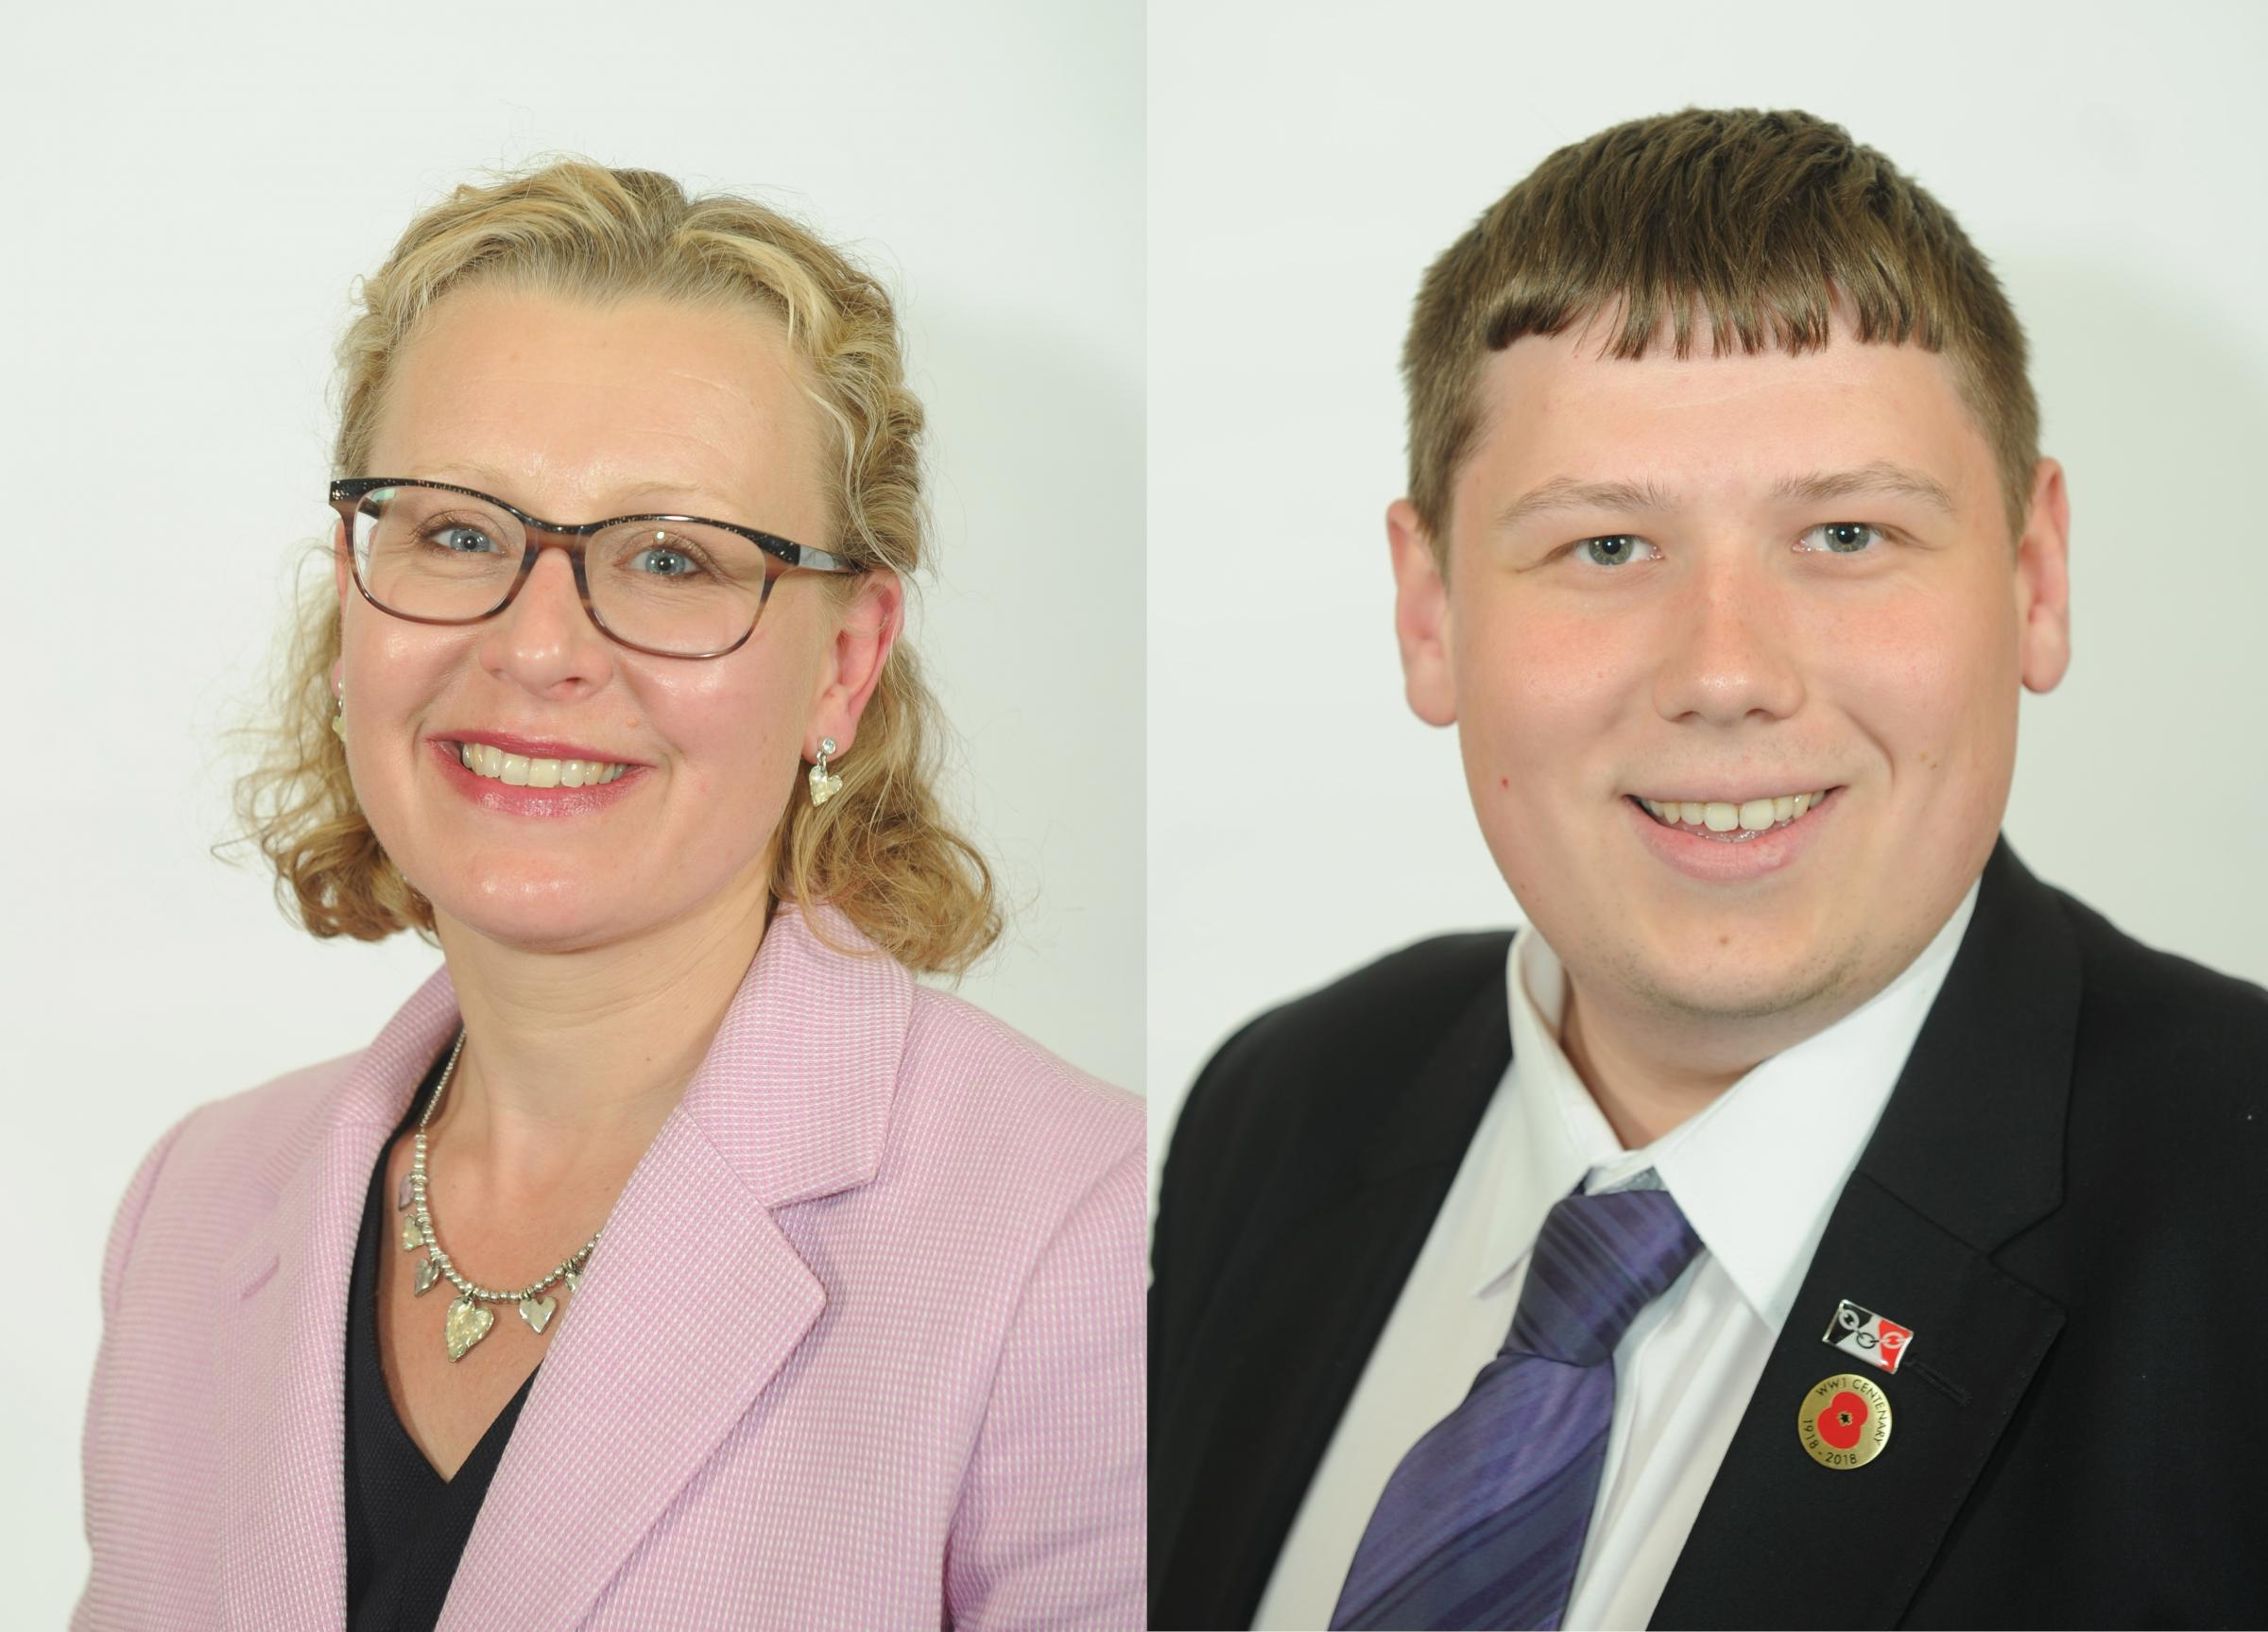 New Dudley Council cabinet members Cllrs Ruth Buttery and Simon Phipps. Photo: Dudley MBC